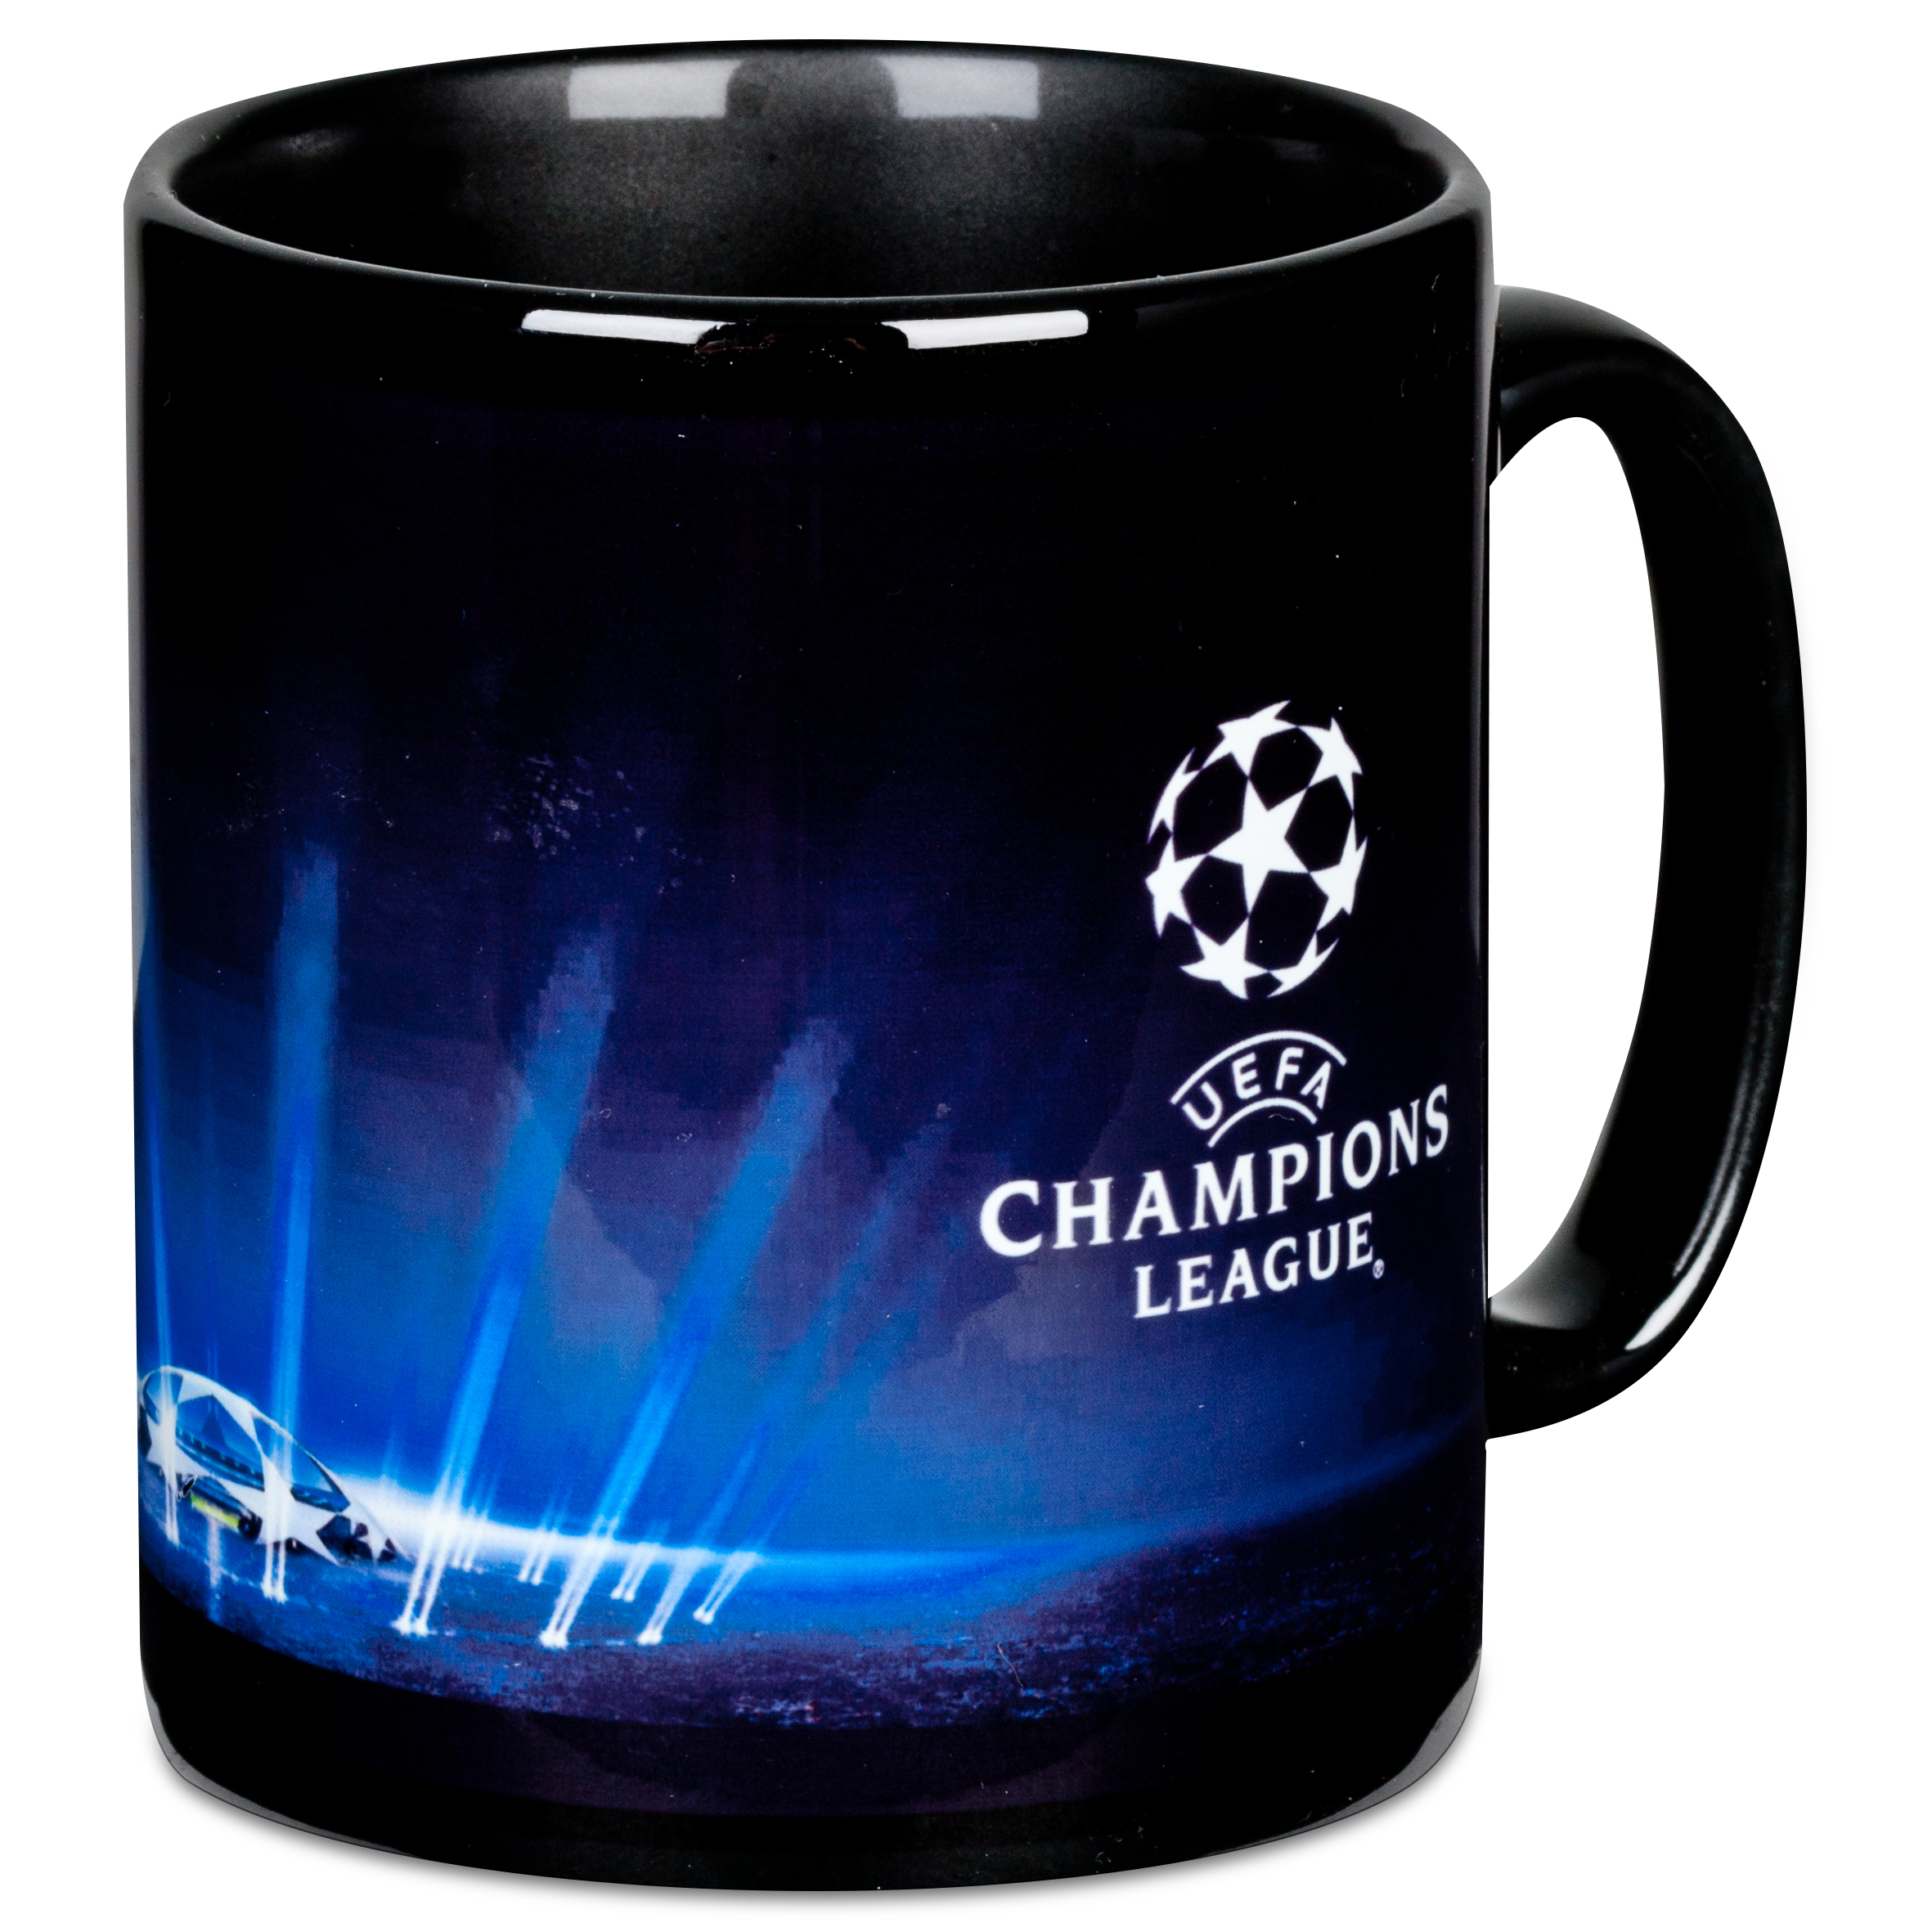 UEFA Champions League Final 2013 Mug